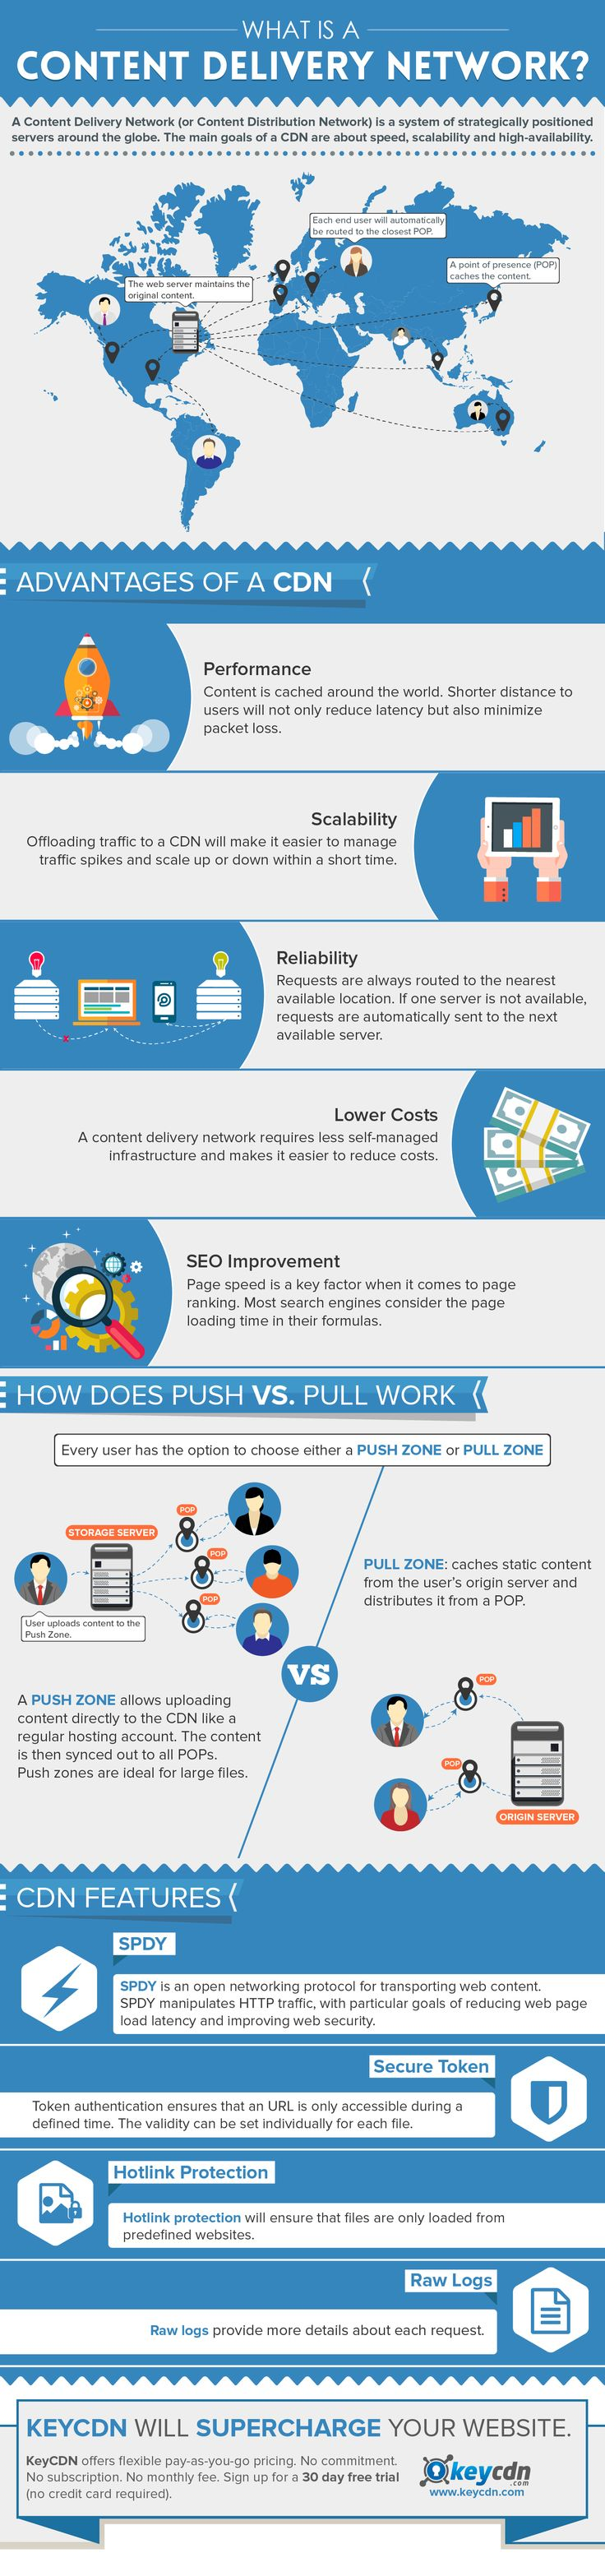 What is a Content Delivery Network? #infographic #ContentMarketing #Marketing